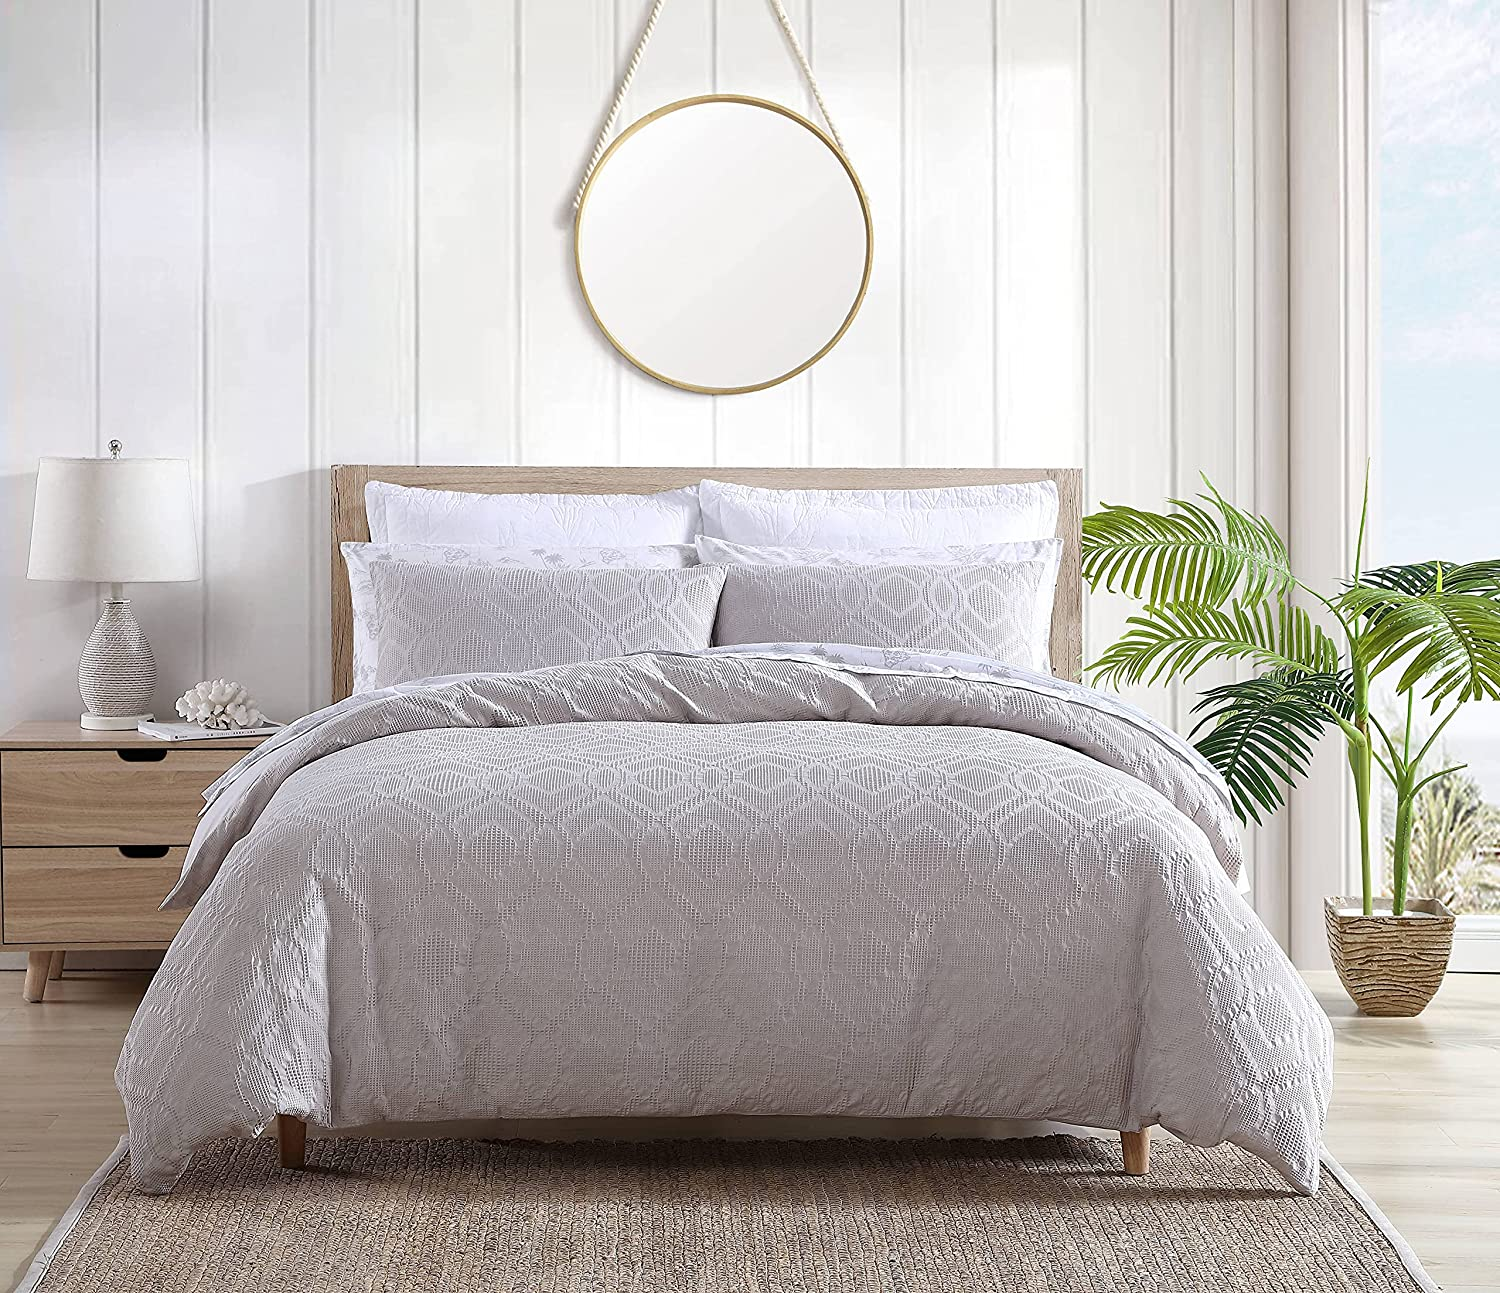 Tommy Bahama Waffle Max 81% OFF Collection Set Bedding Comforter Cotton Dedication